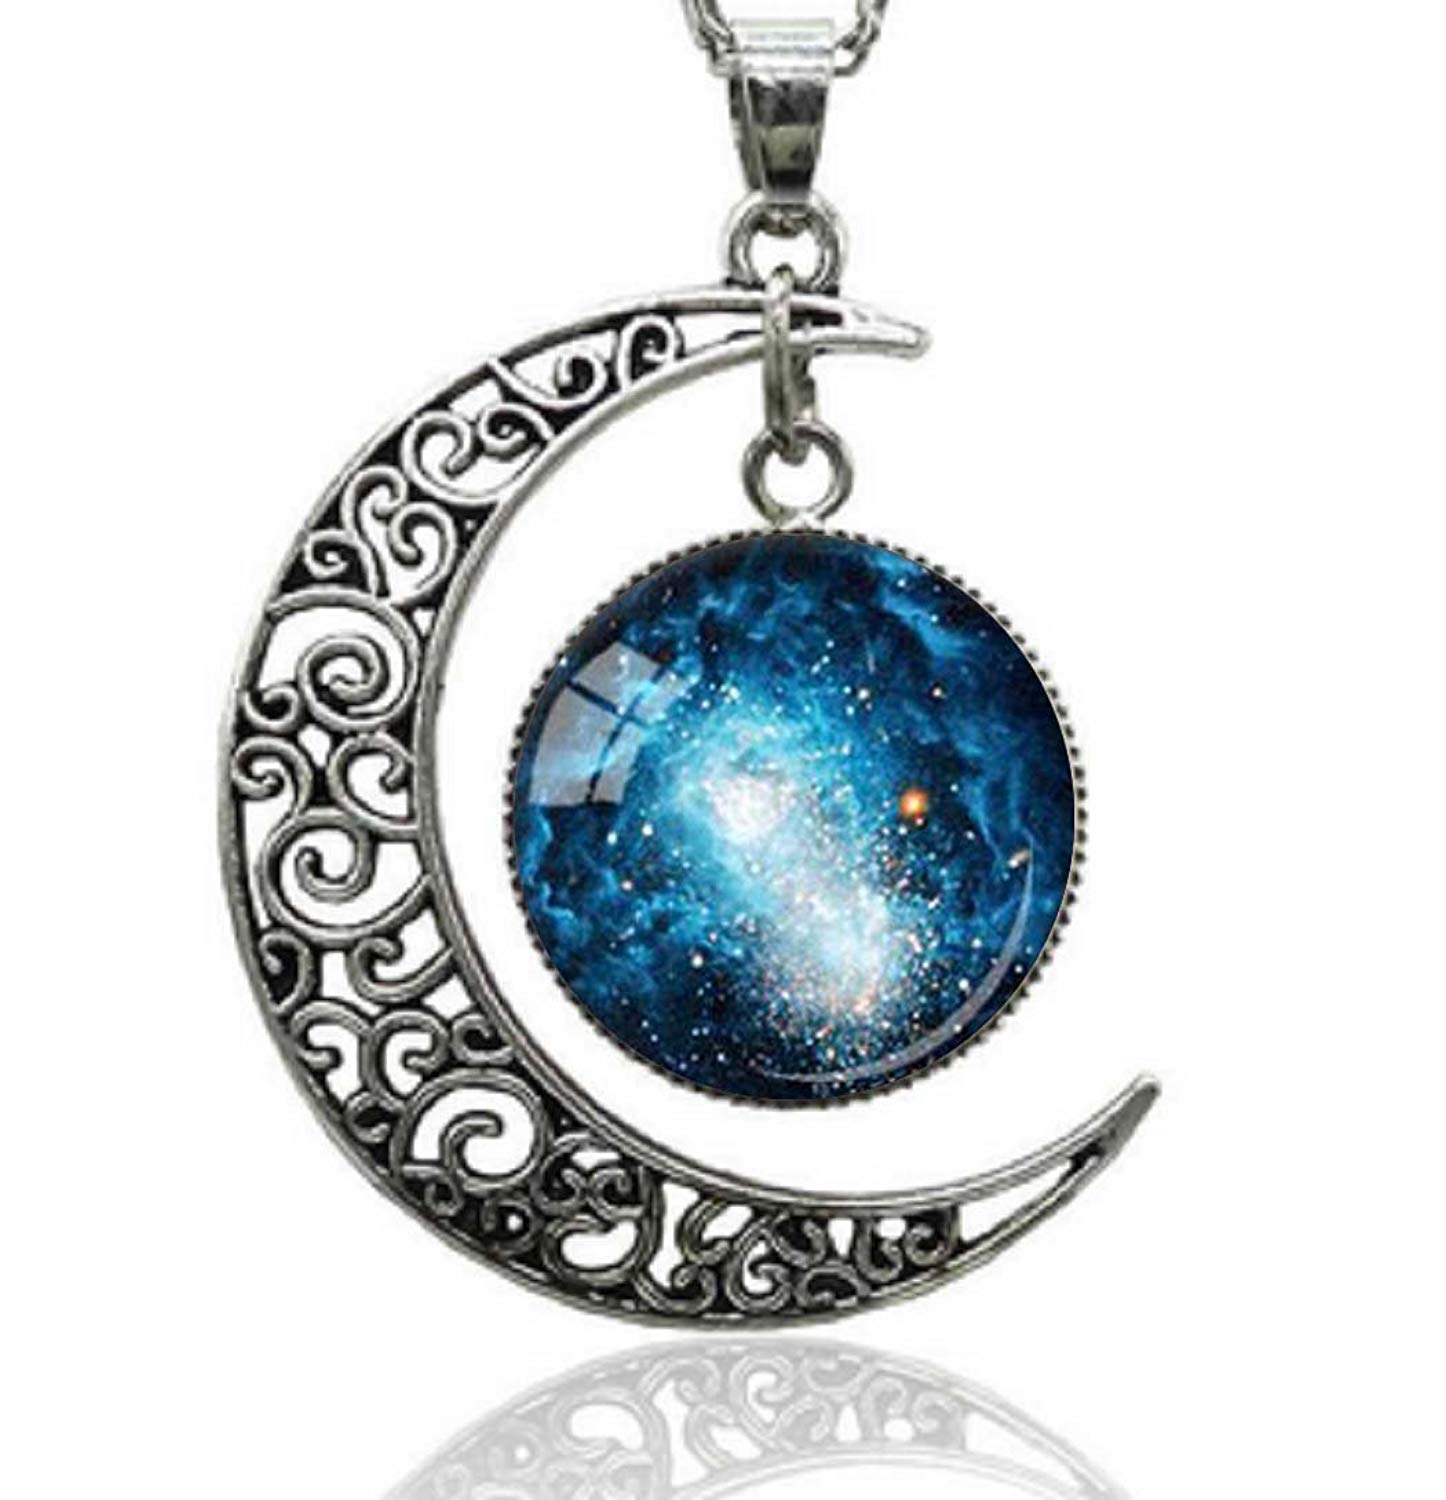 3cbb93ea765d86 Get Quotations · Gemingo Crescent Moon Necklace Silver Glass Dome Galaxy Pendant  Necklace